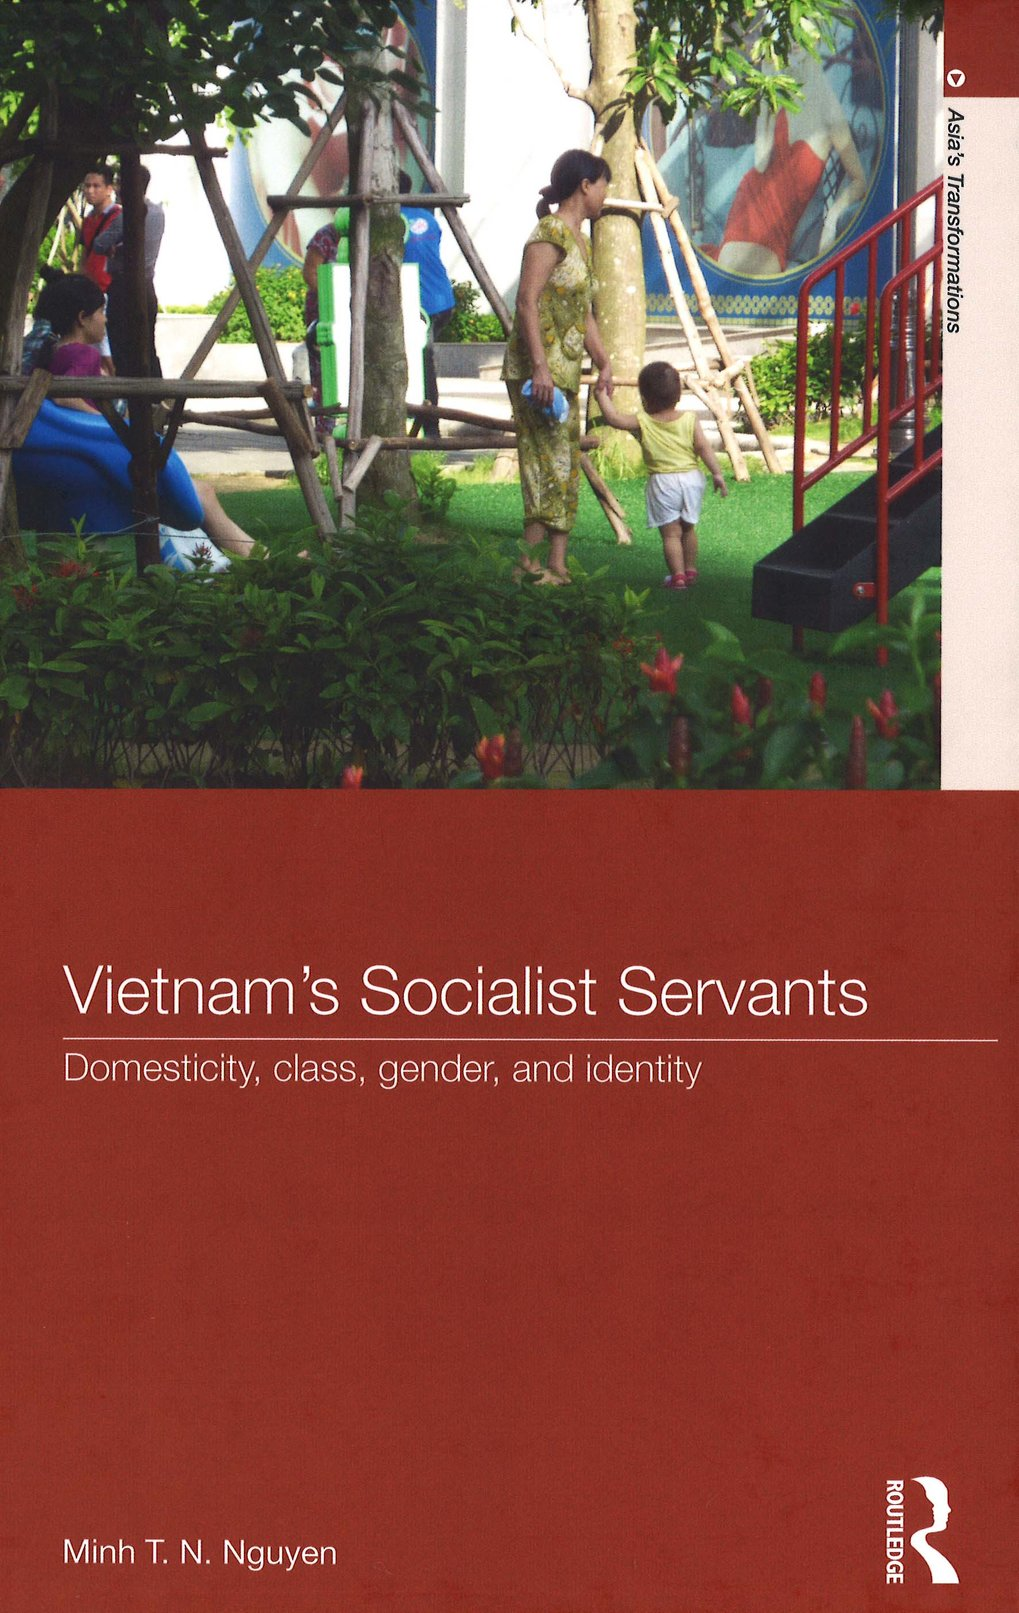 Vietnam's Socialist Servants. Domesticity, class, gender, and identity